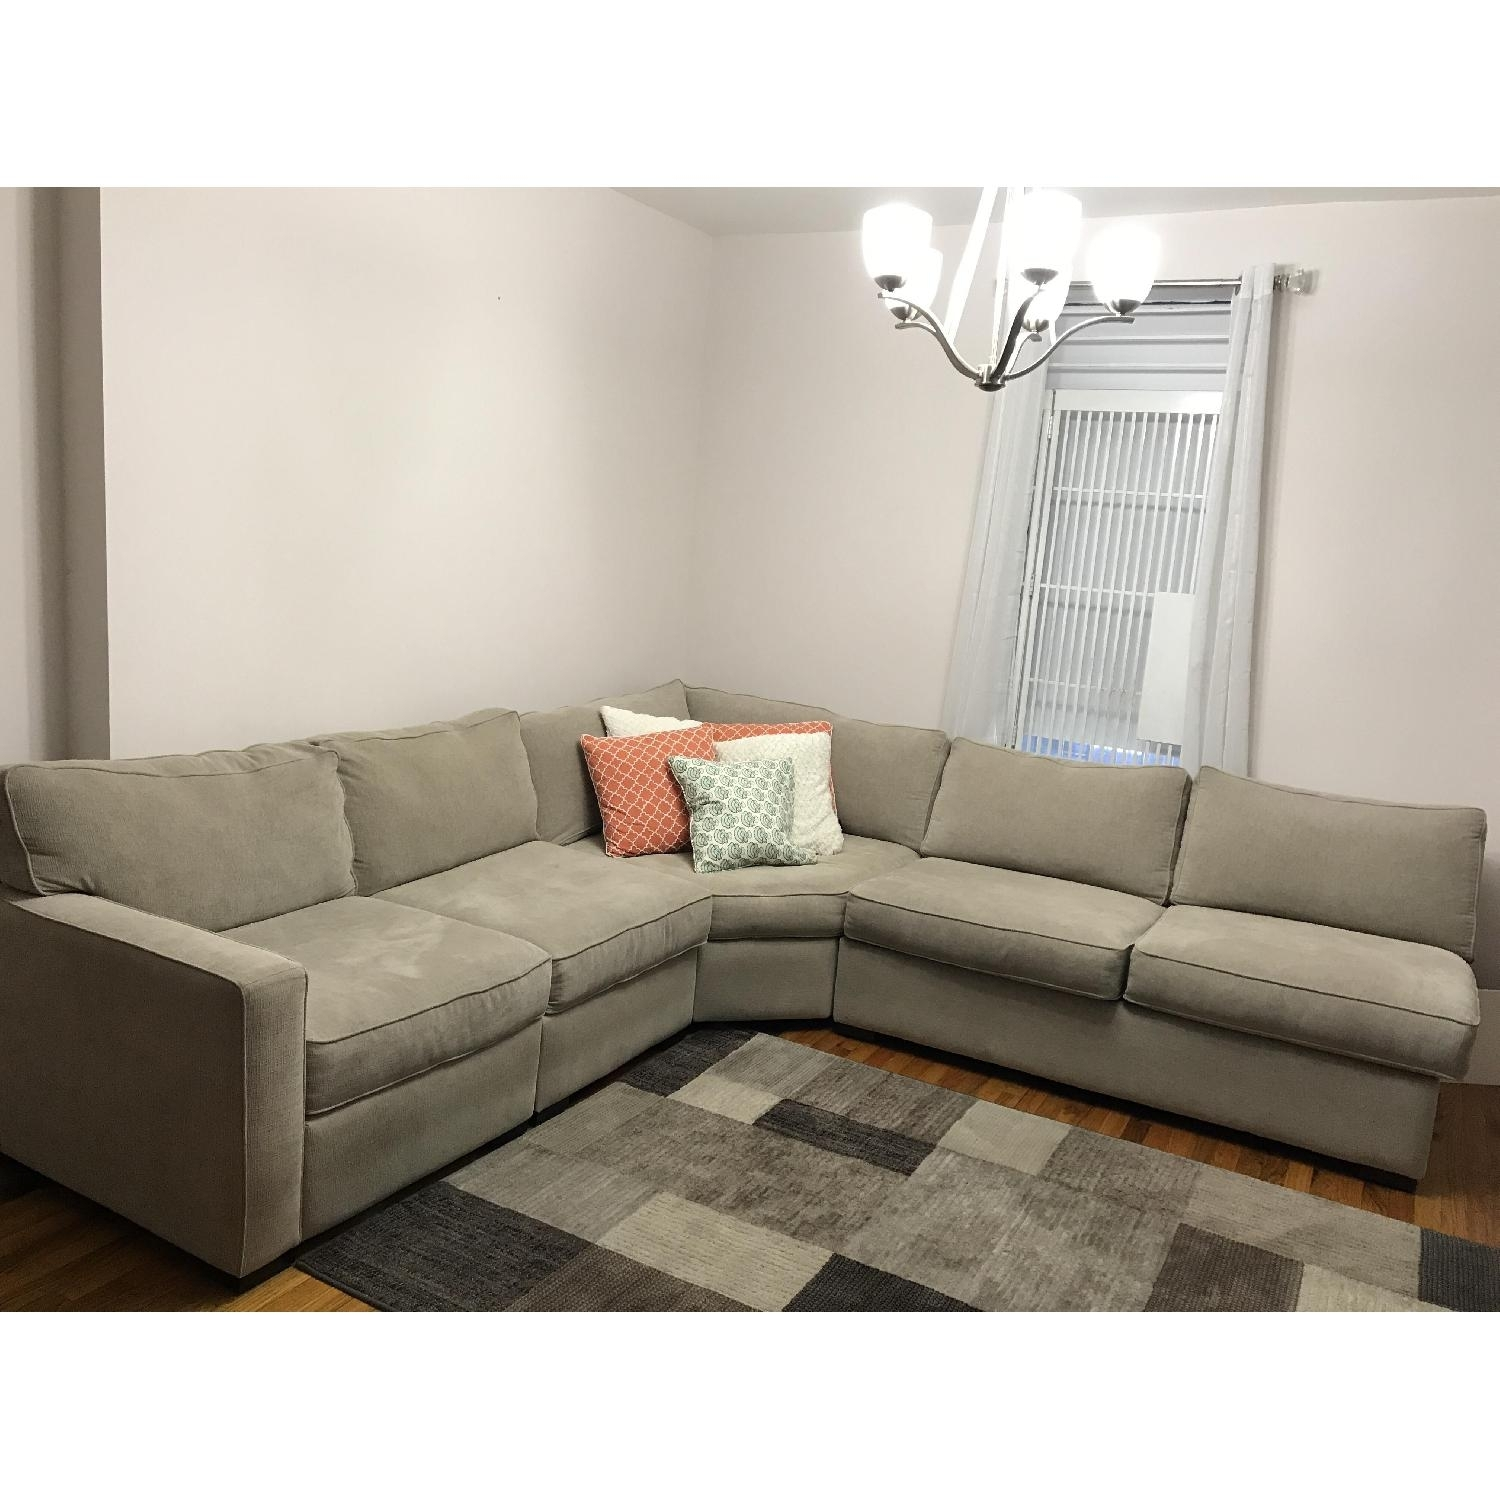 Magnolia Home Joanna Gaines Homestead Threece Sectional Sofa Destin With Regard To Magnolia Home Homestead 4 Piece Sectionals By Joanna Gaines (View 5 of 25)